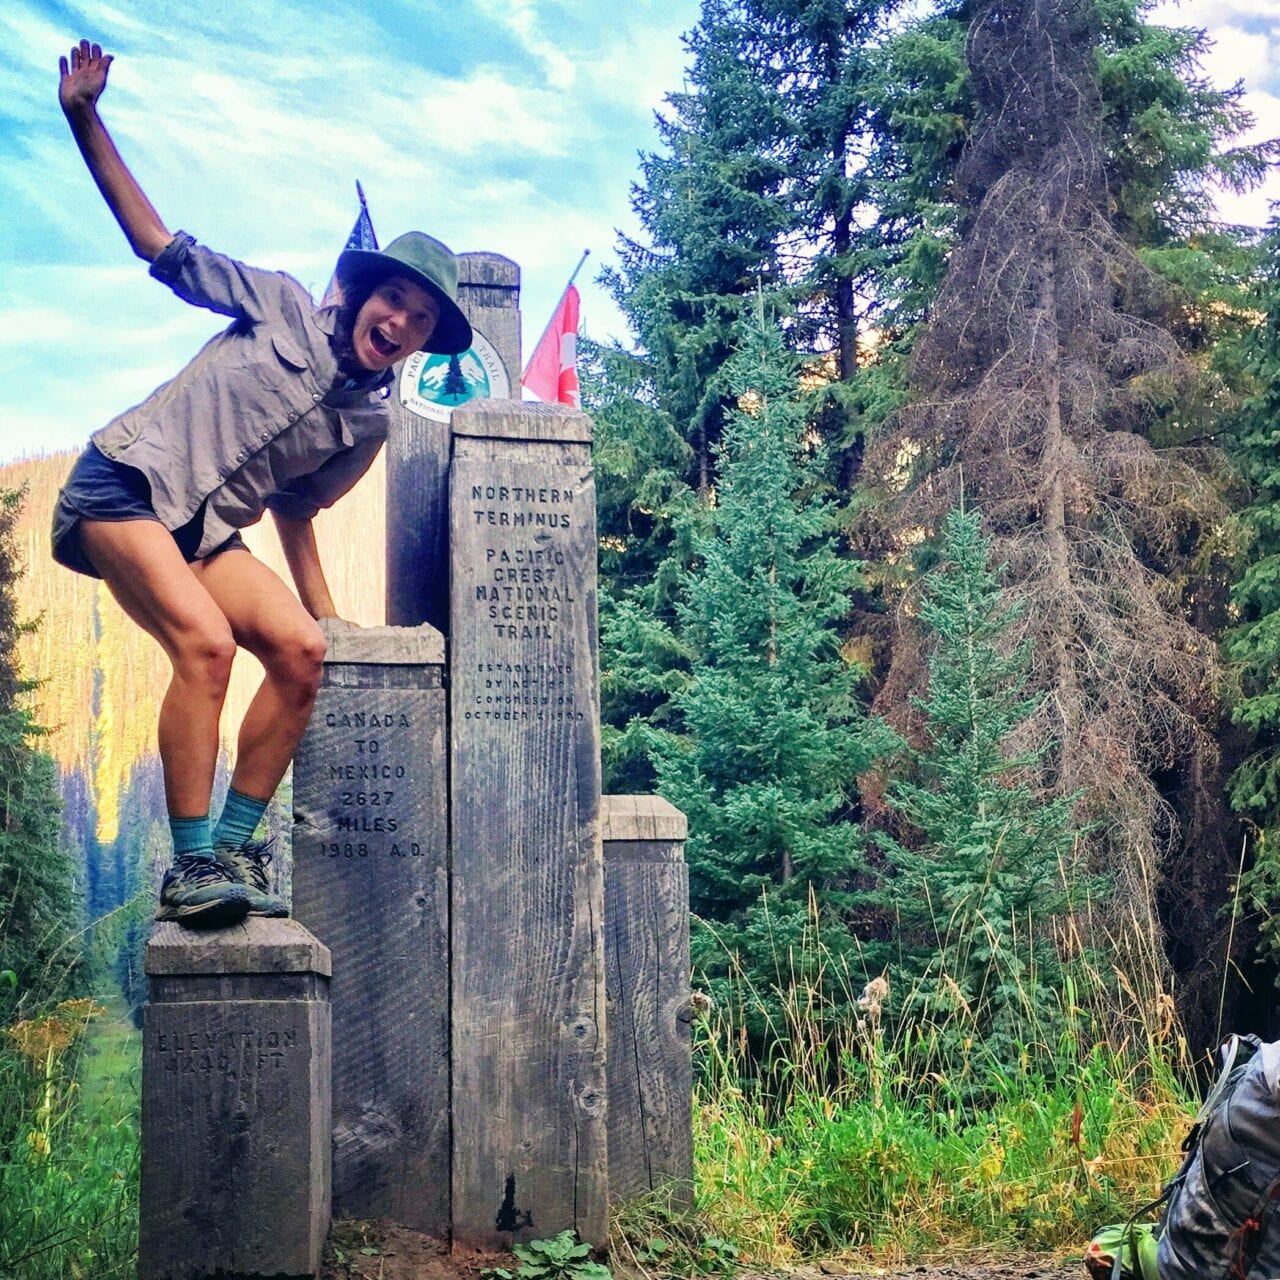 A woman hiker stands on the northern terminus of the Pacific Crest Trail.